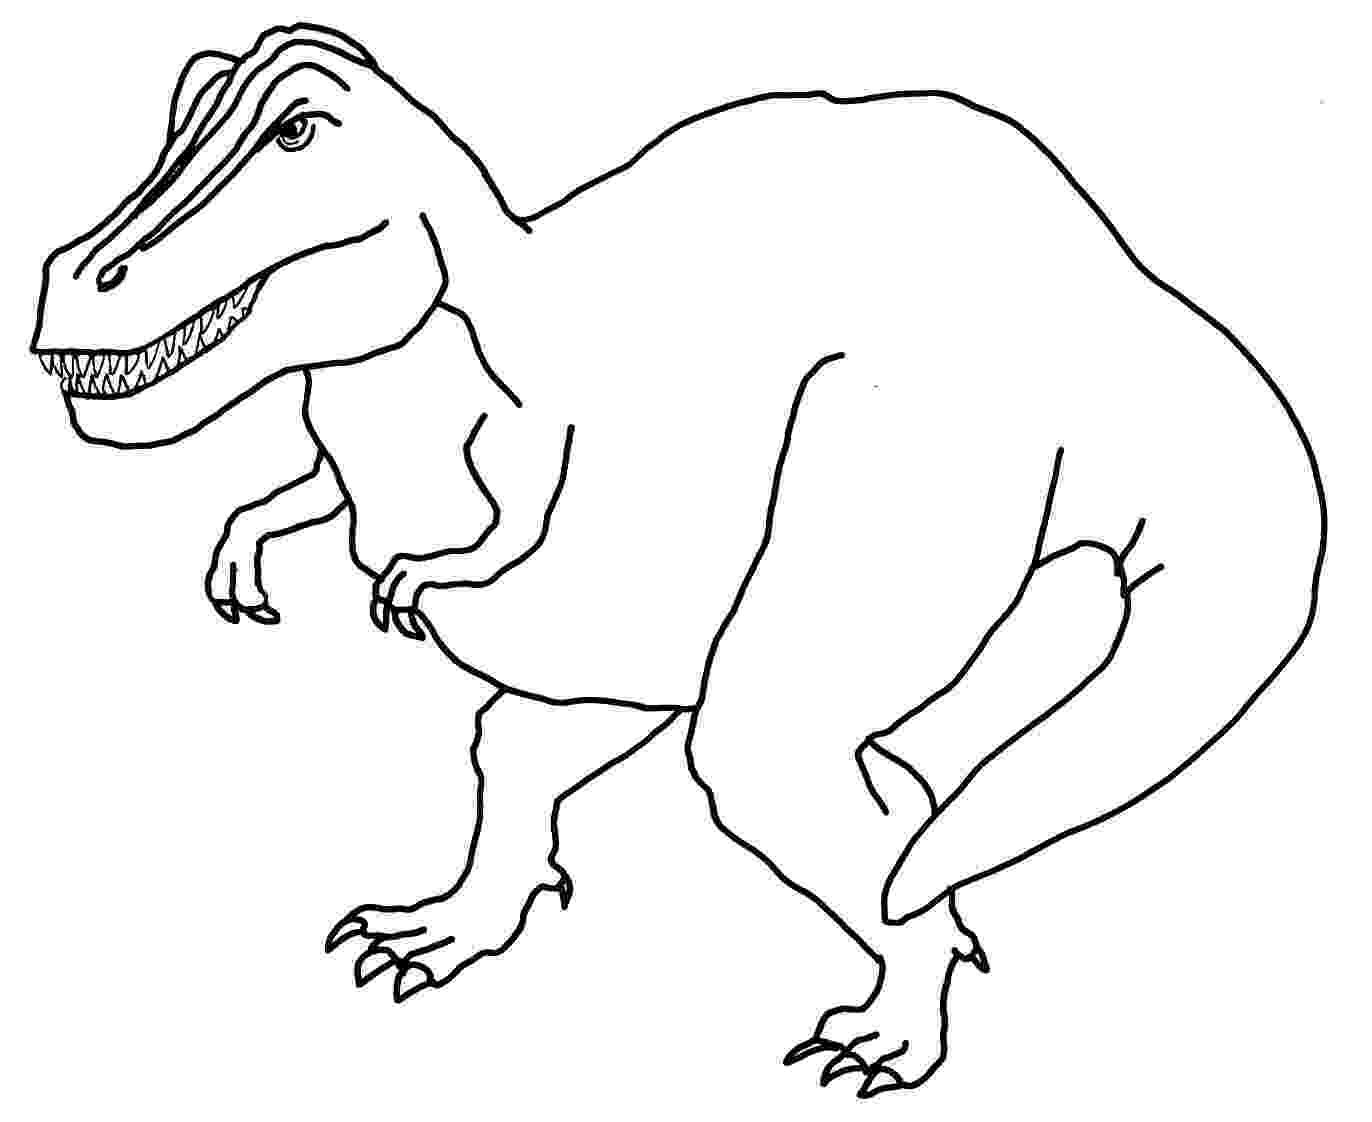 dinosaurs for coloring dinosaur coloring pages coloring for dinosaurs